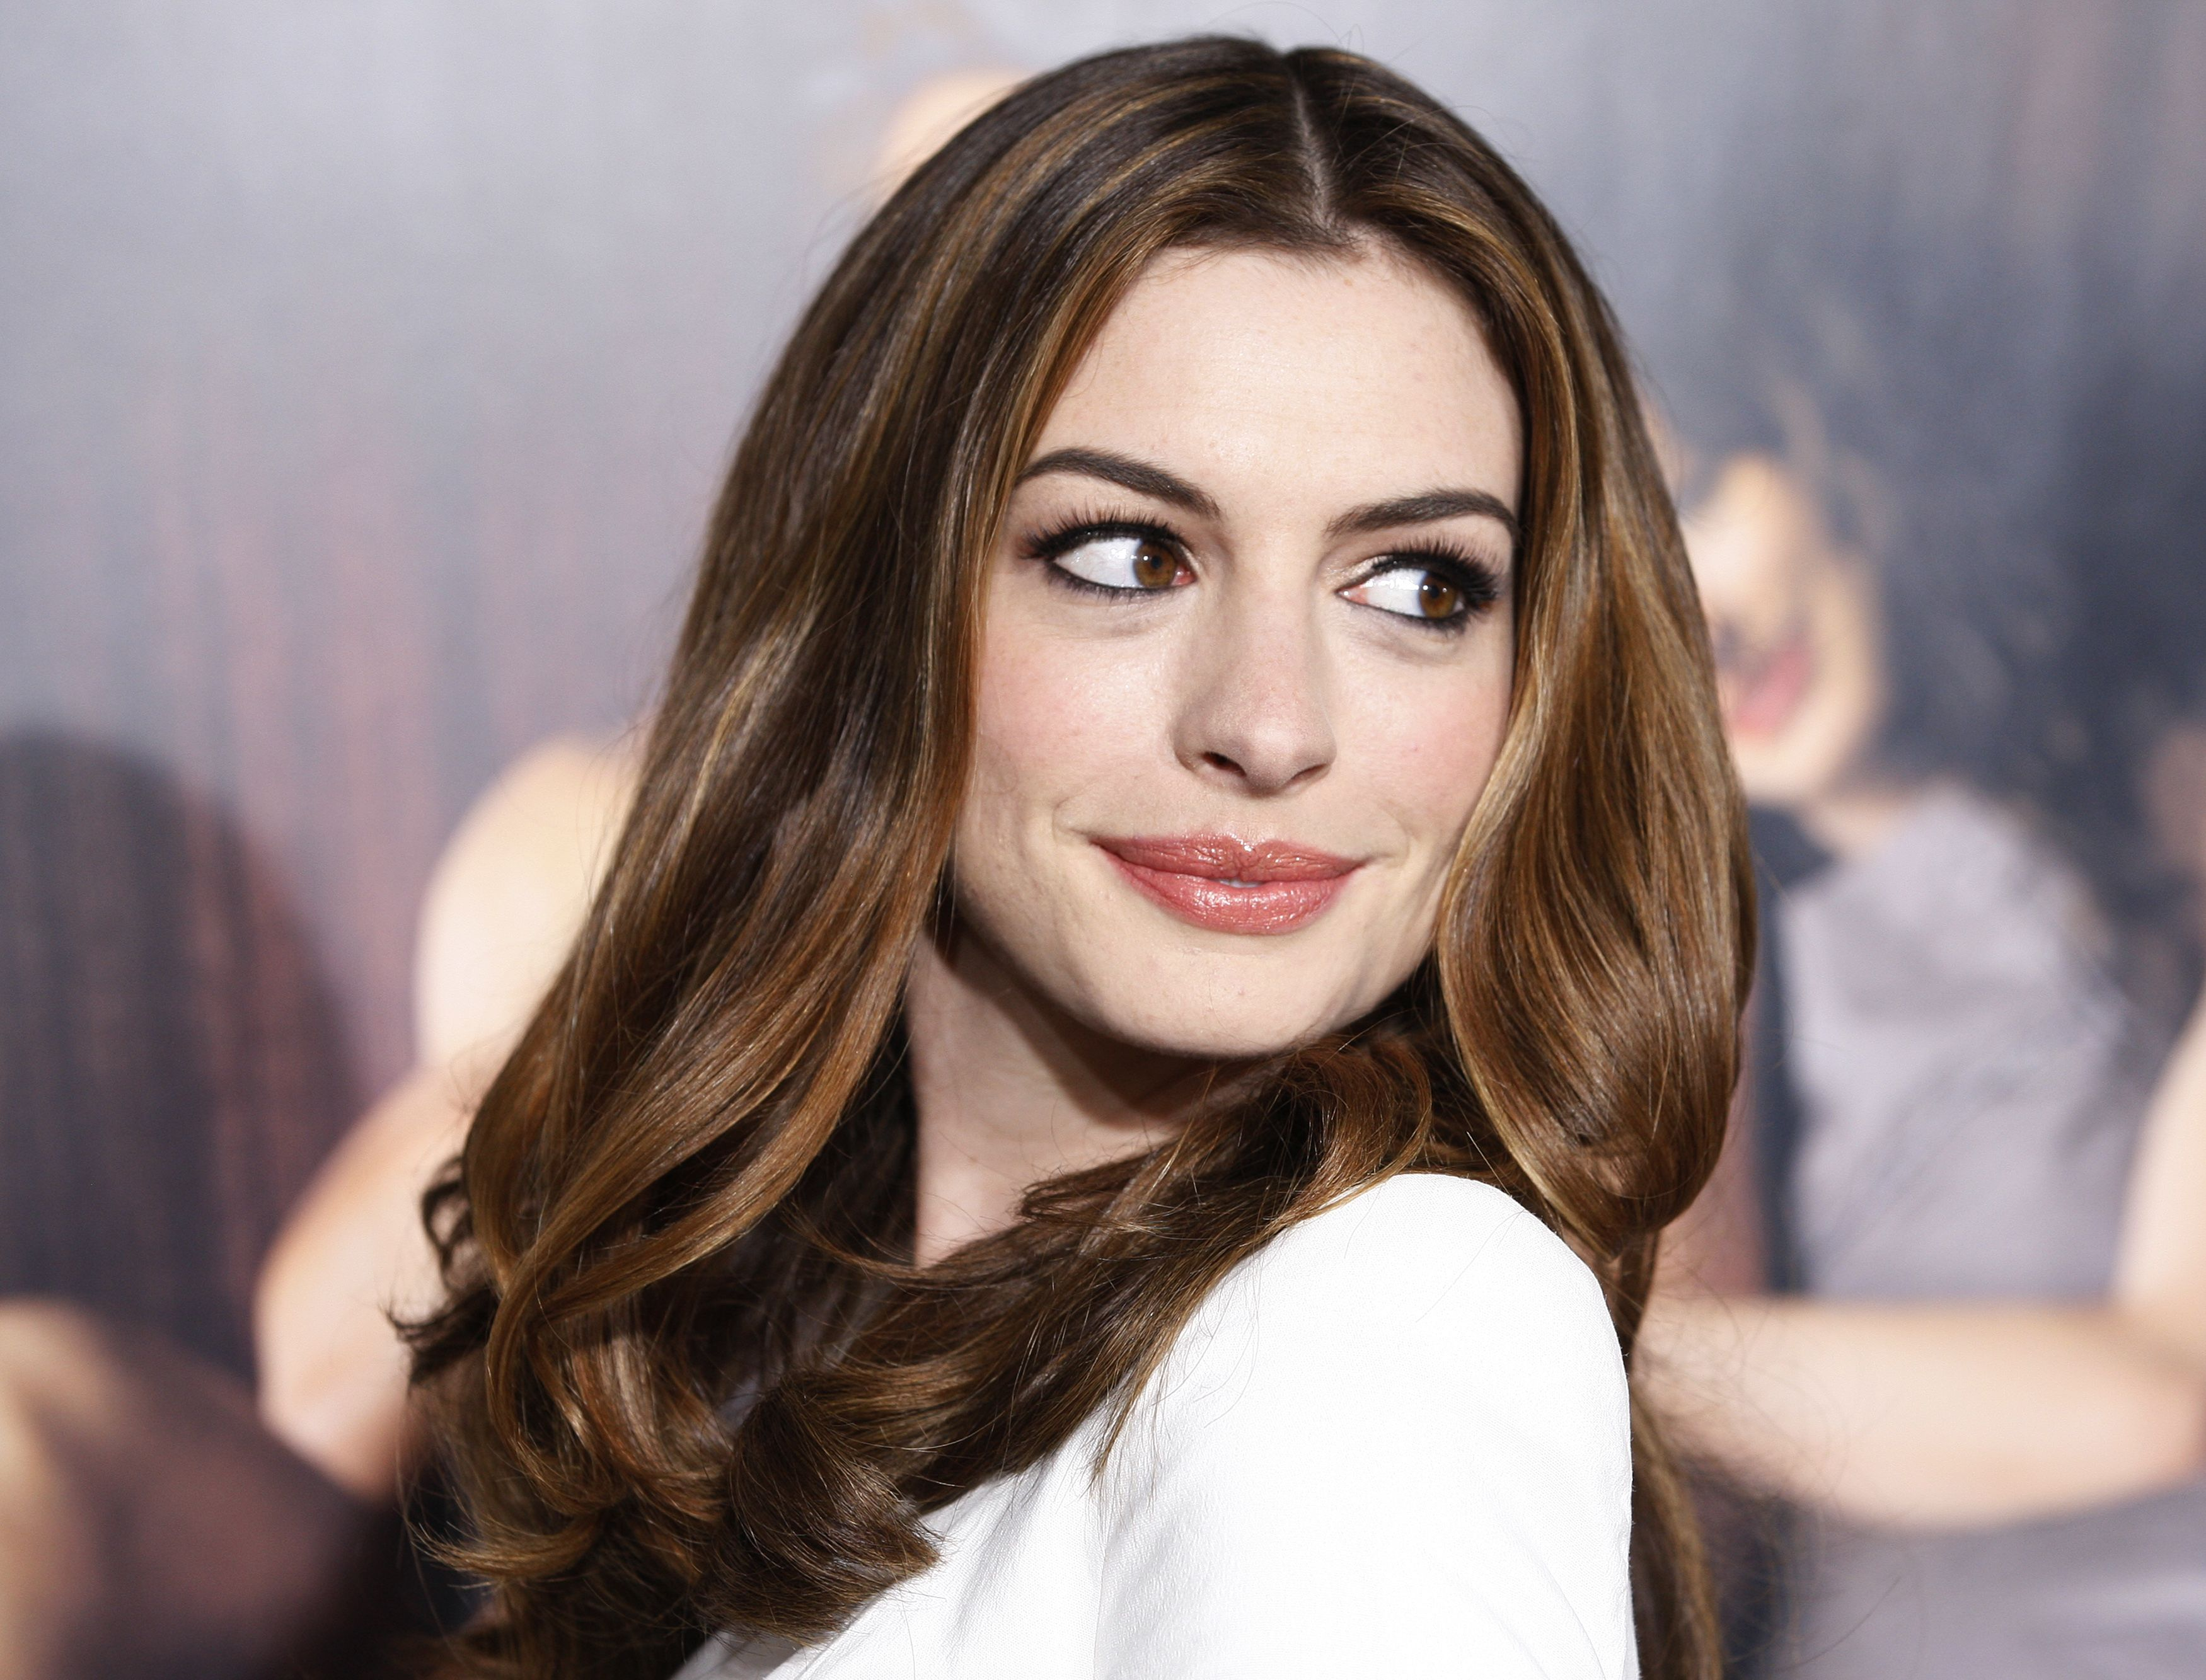 Anne Hathaway al cinema nei panni di Barbie